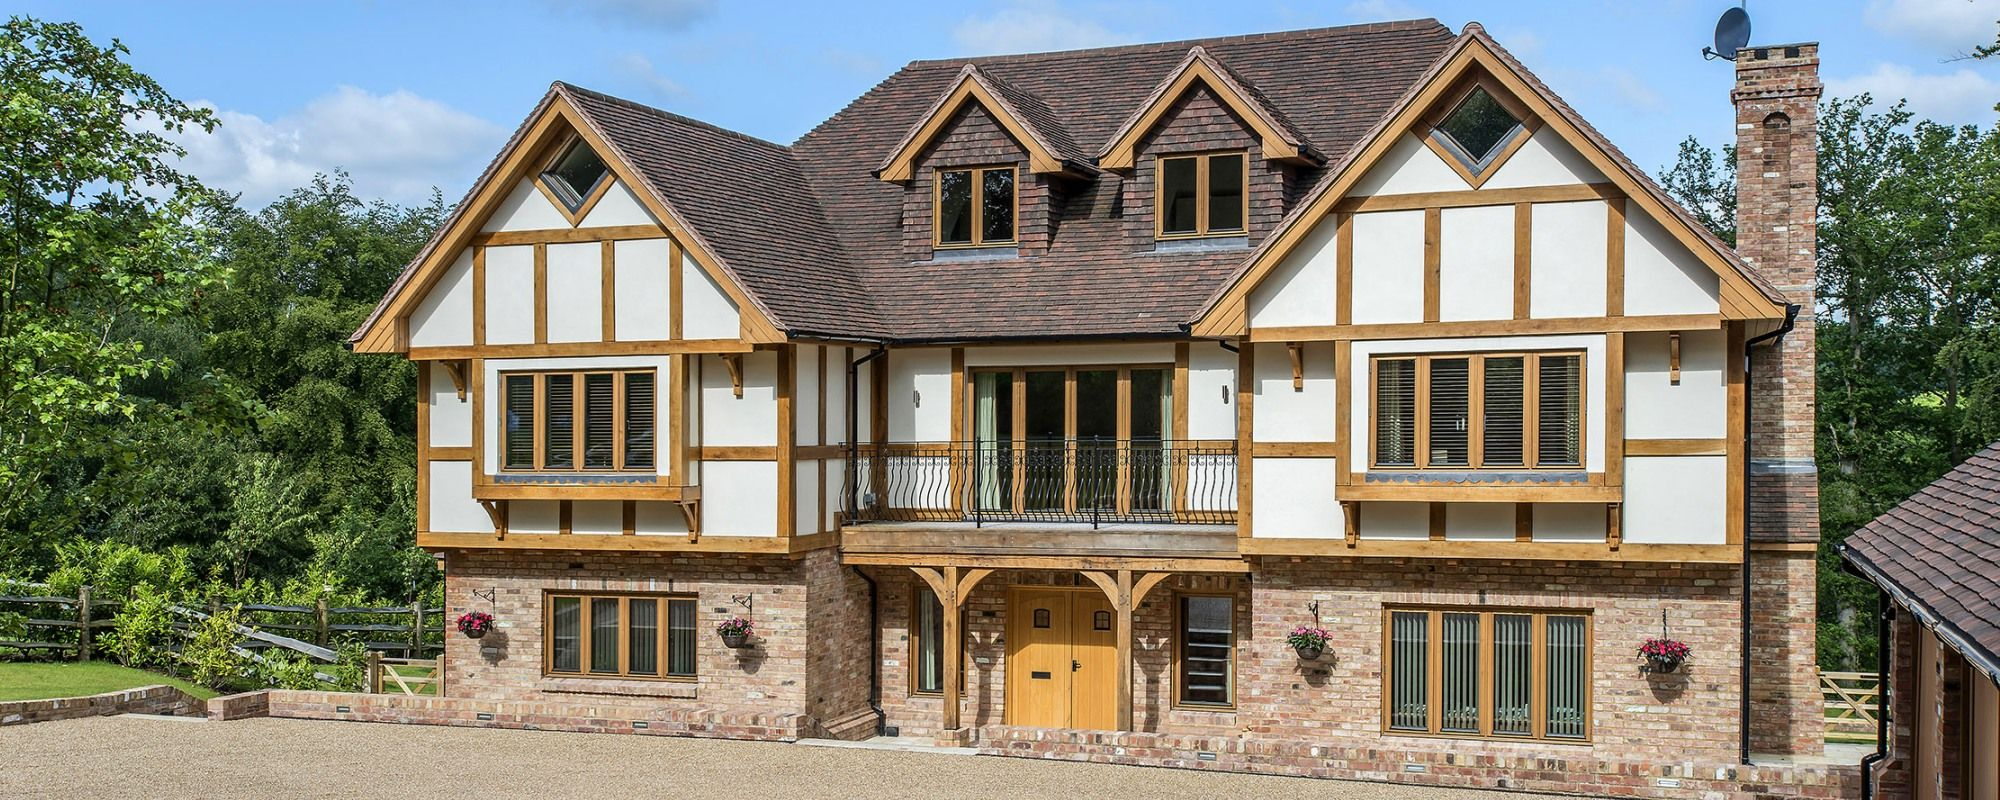 Traditional mock tudor style timber frame self build house for Timber style homes